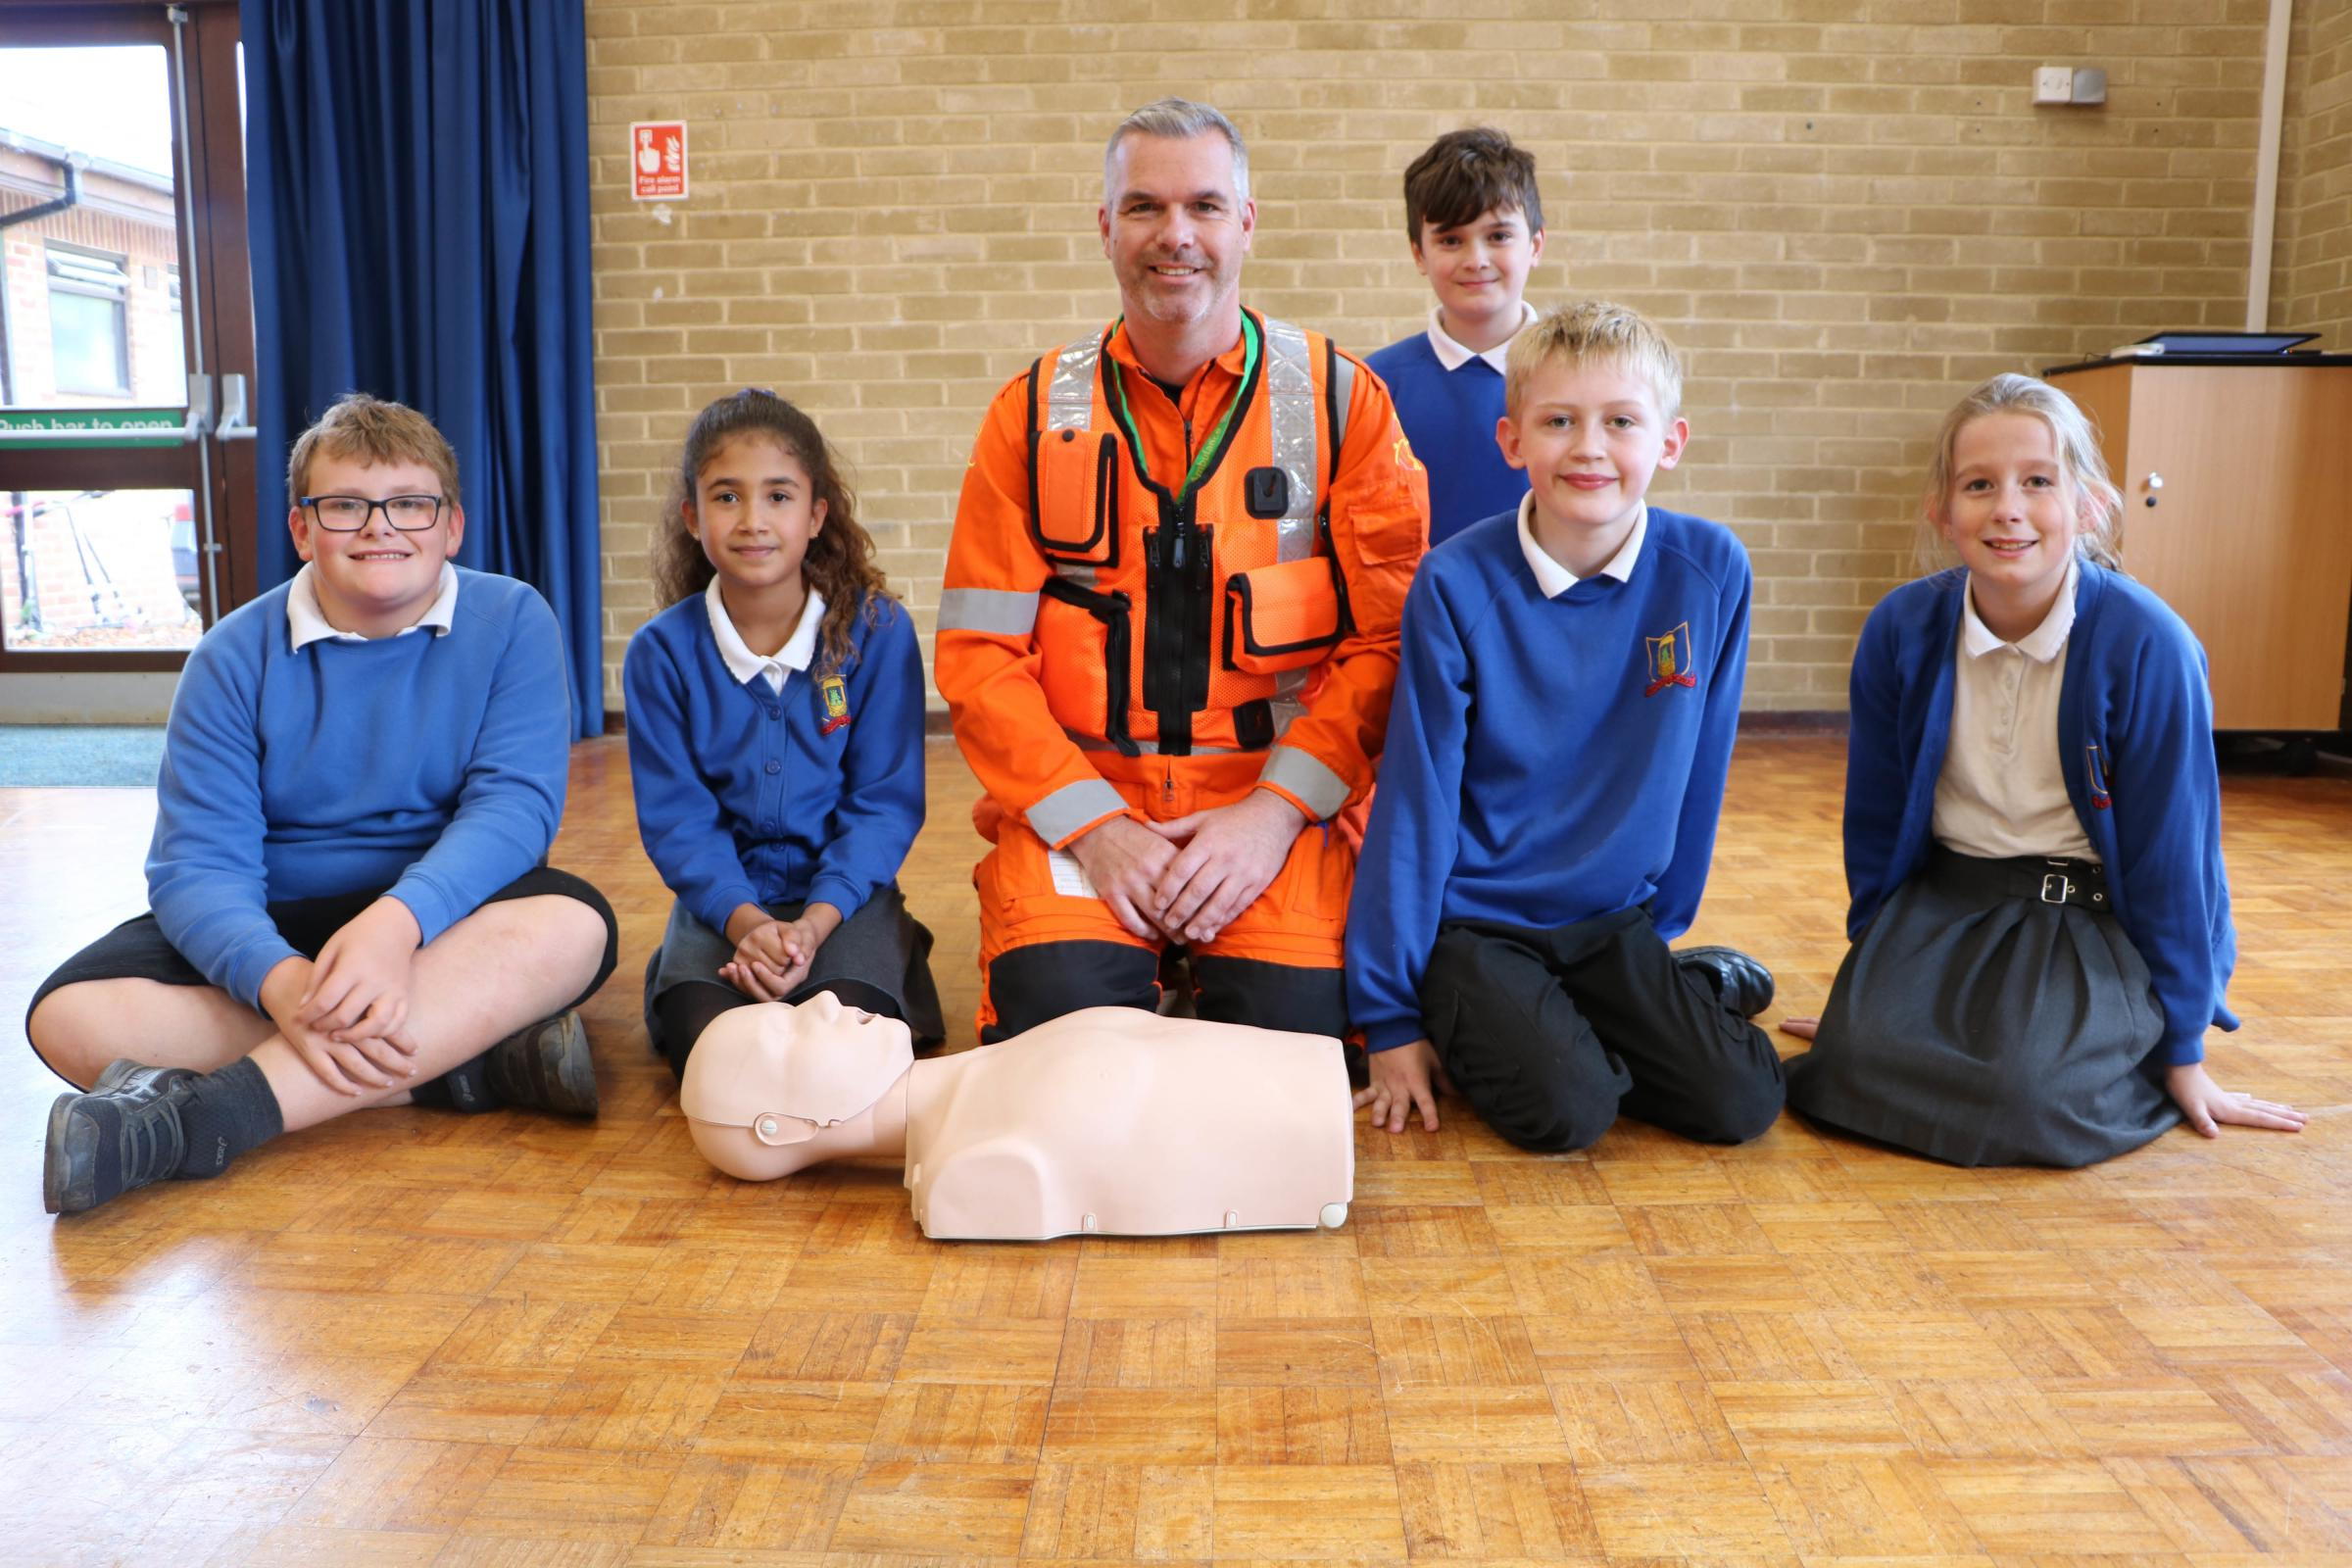 Children learn life saving skills with Wiltshire Air Ambulance programme